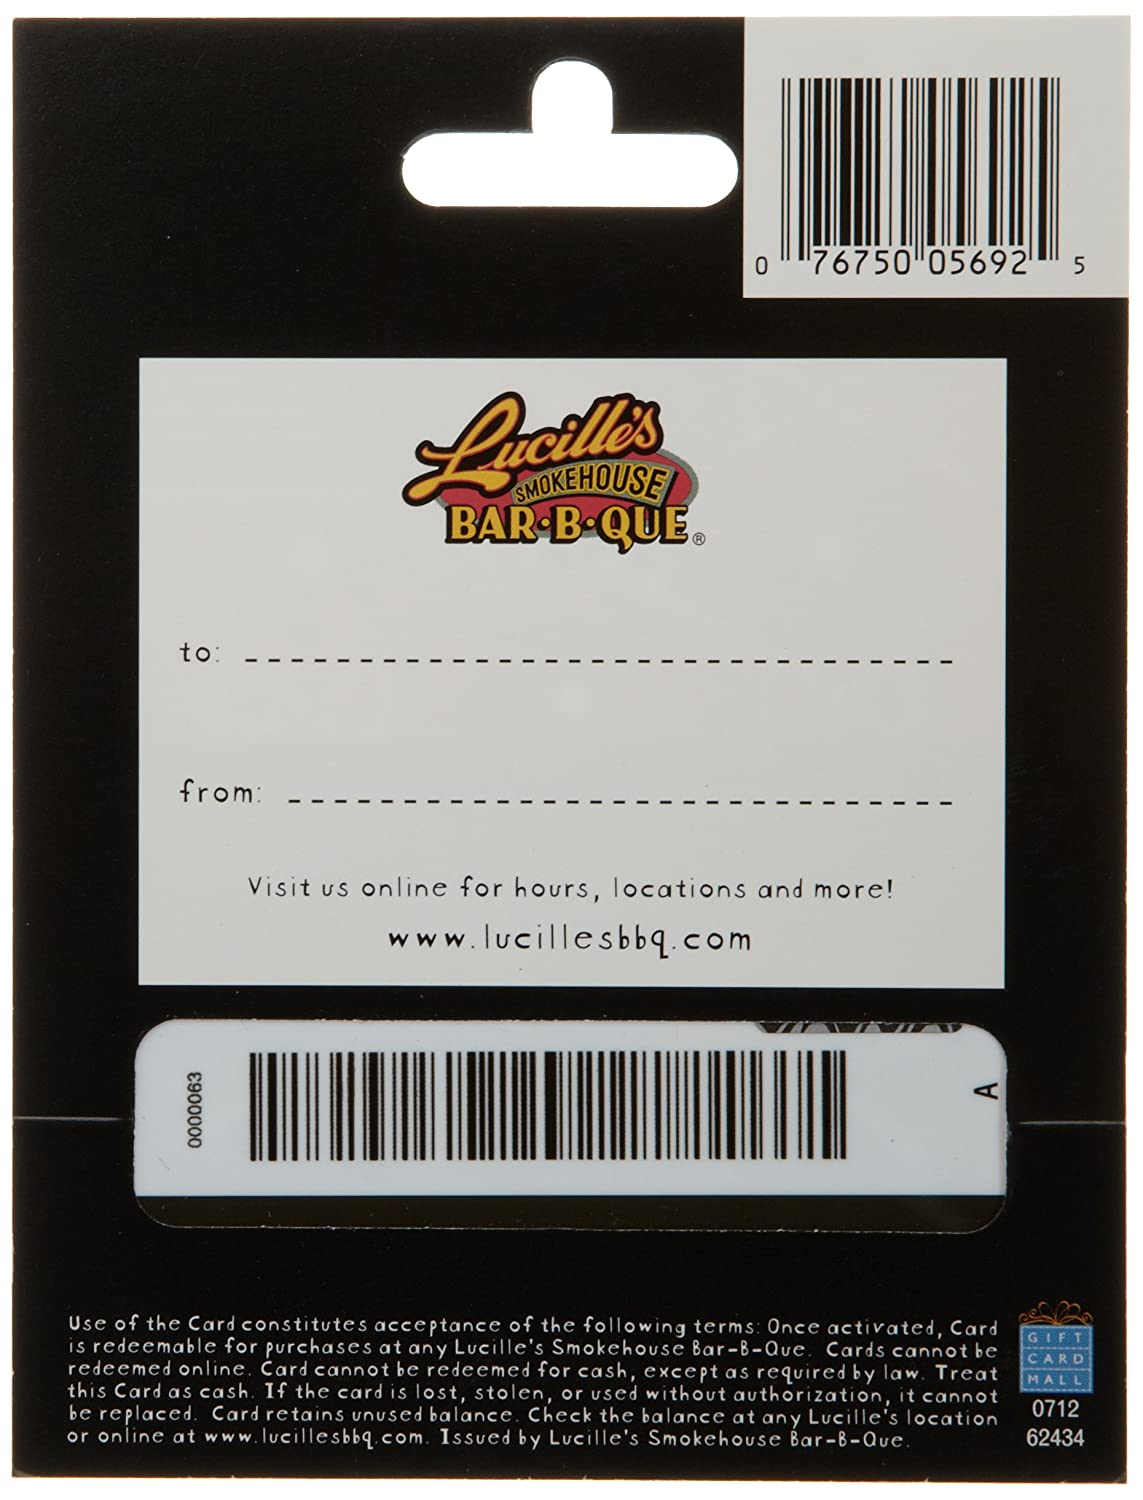 Amazon.com: Lucilles Smokehouse Bar-B-Q - Tarjeta de regalo ...